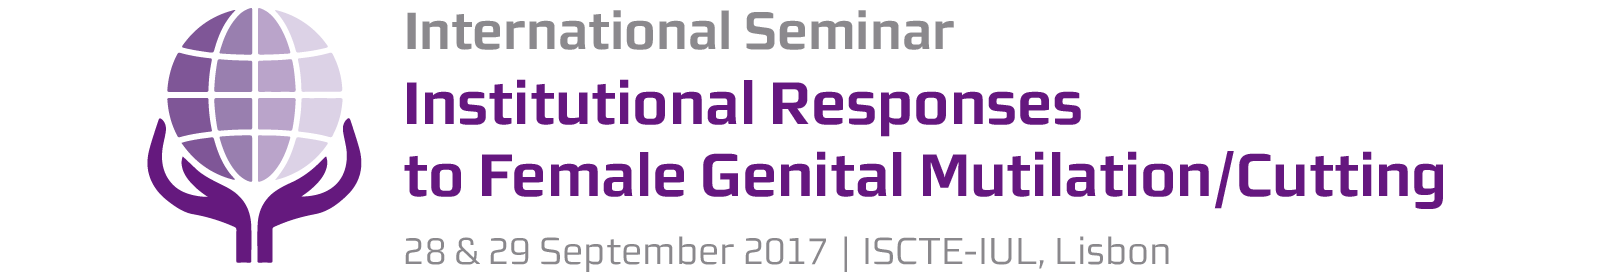 Institutional Responses to C/FGM